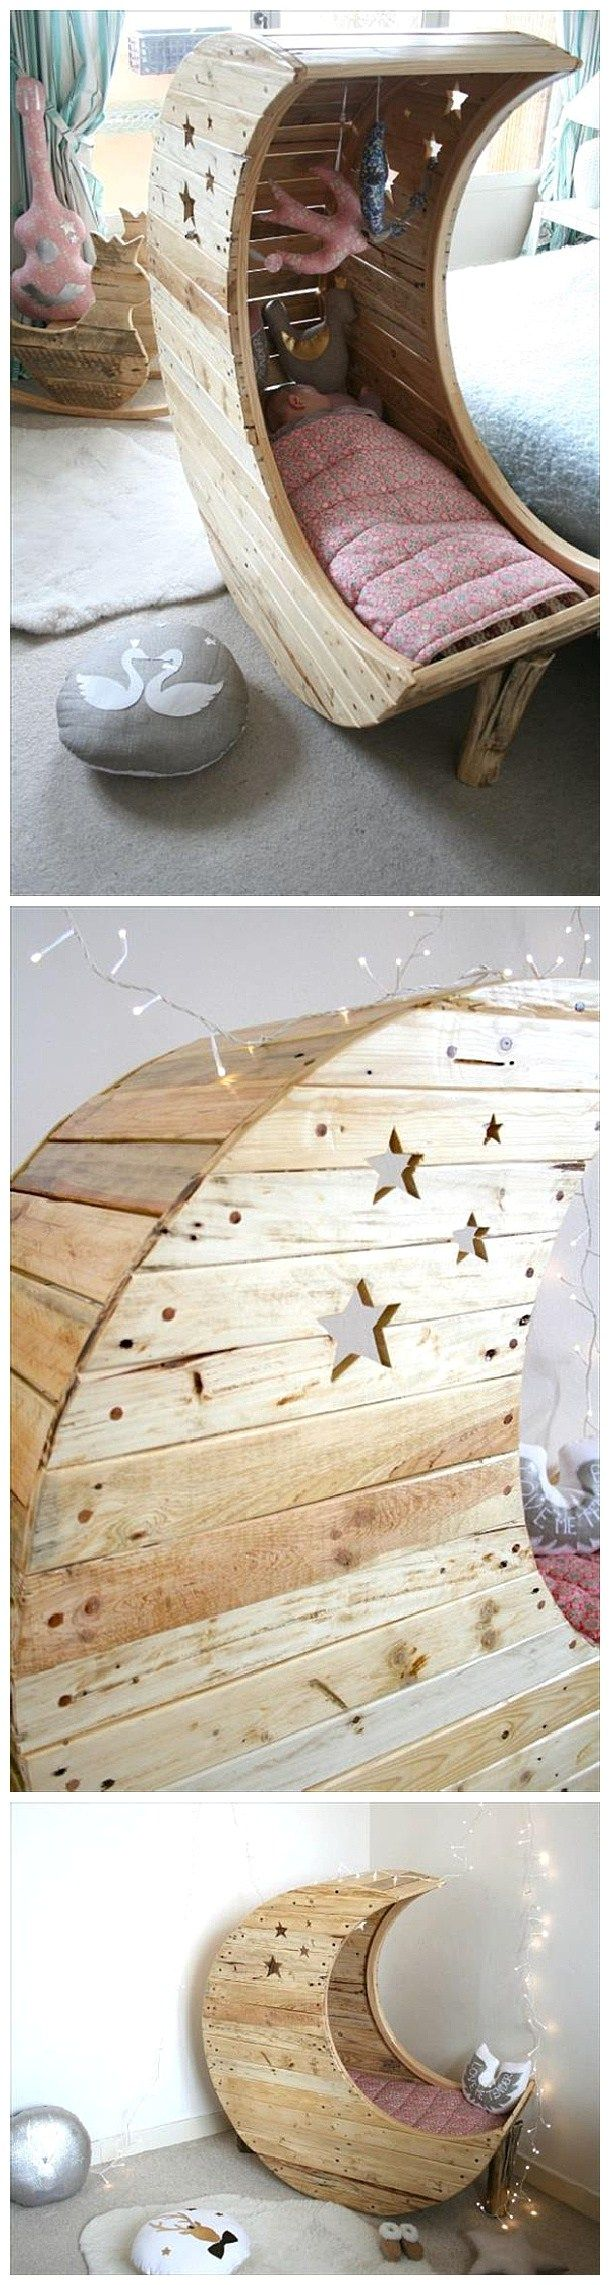 Diy pallet sofa with table 99 pallets - Diy Pallet Projects The Best Reclaimed Wood Upcycle Ideas